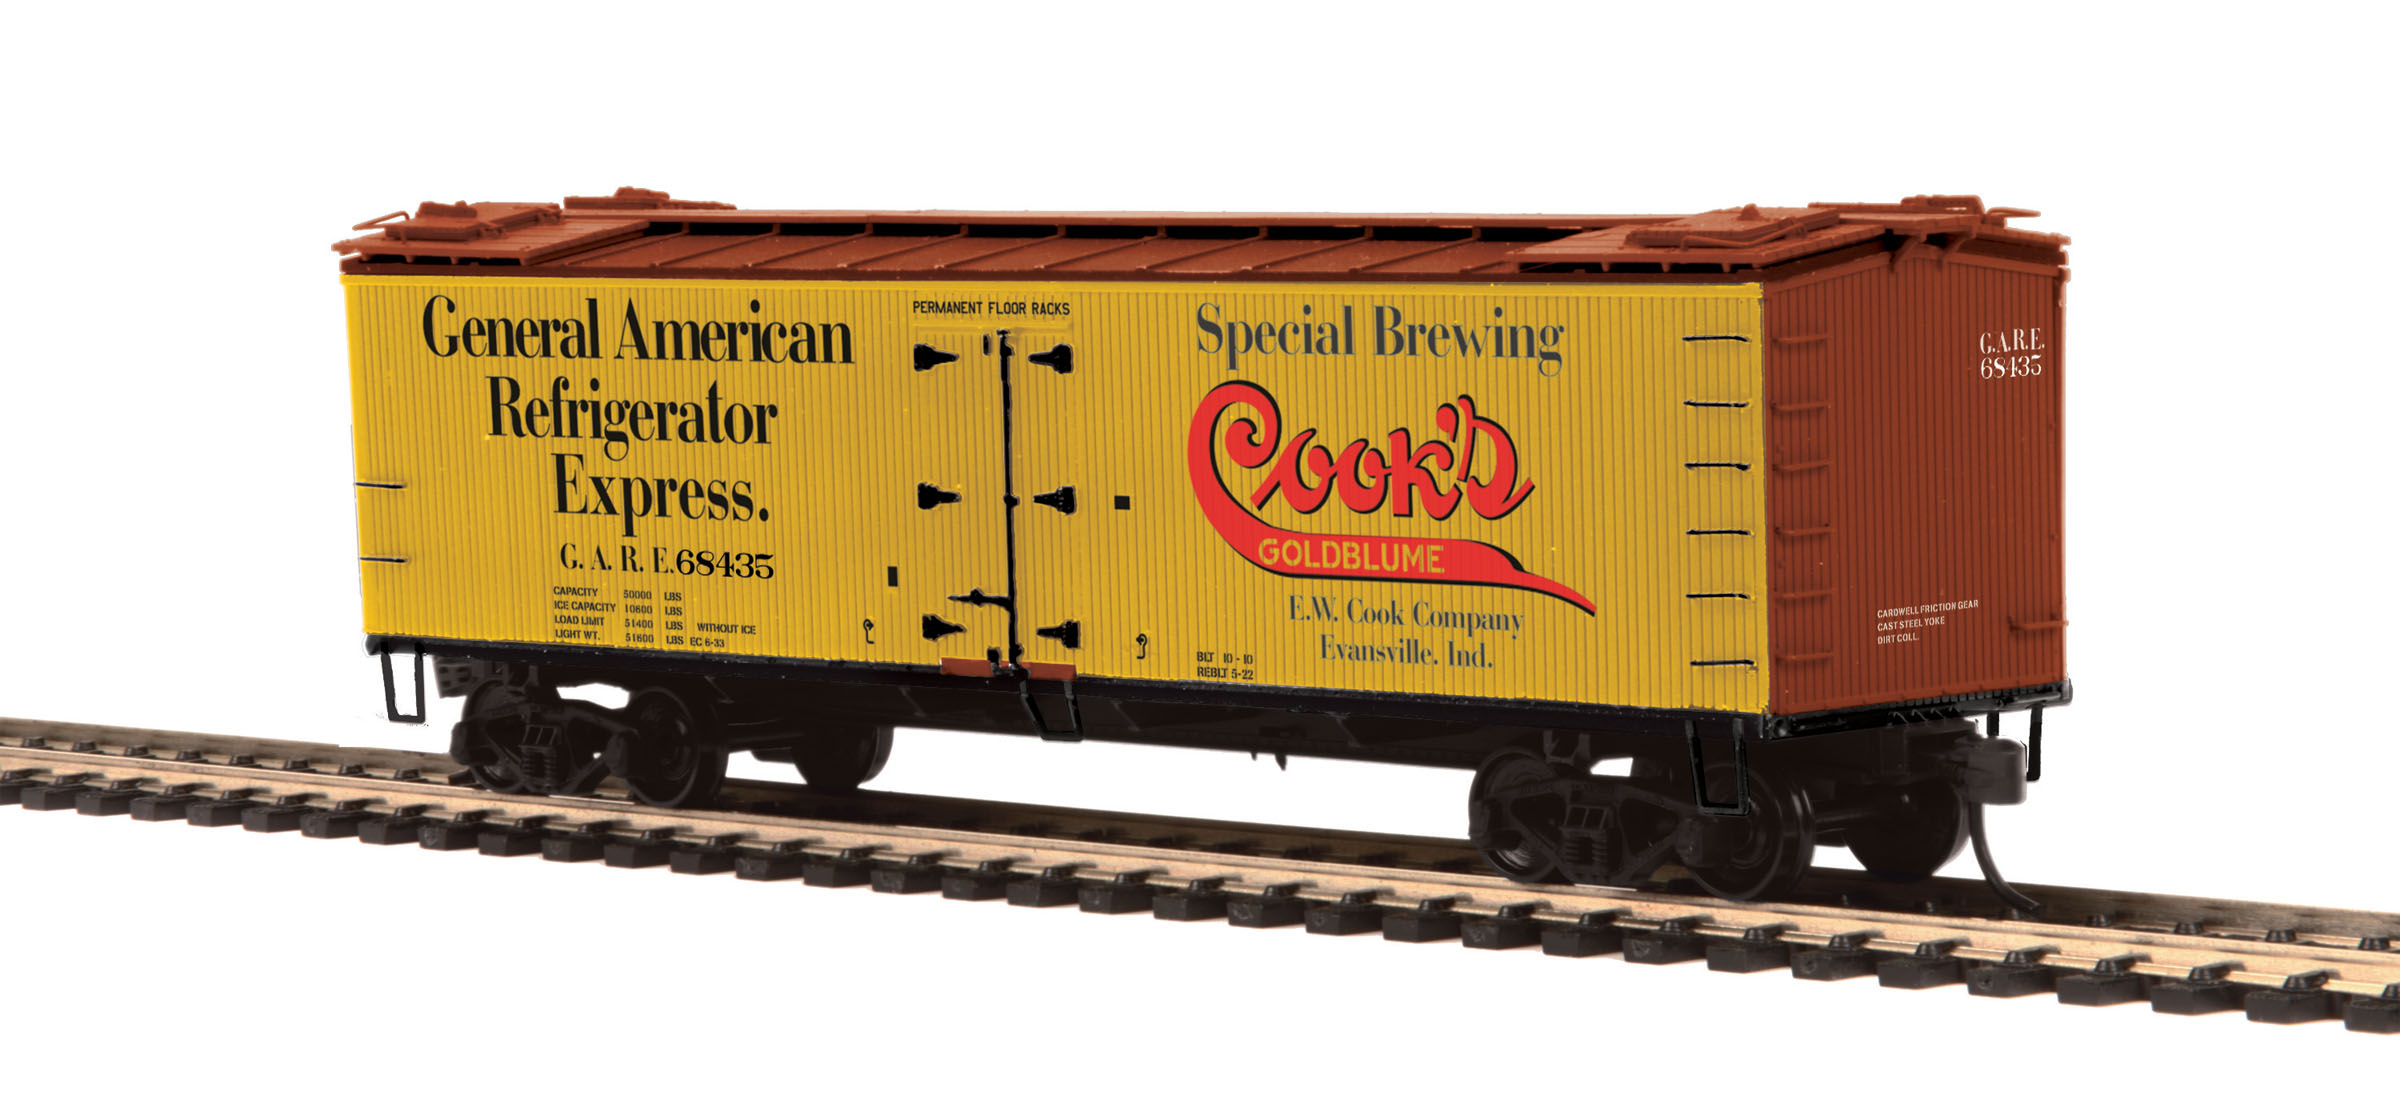 MTH 80-94046 HO R40-2 Wood Reefer, Cooks Goldblume Beer #68435 This is MTH 80-94046 HO R40-2 Wood Reefer, Cooks Goldblume Beer #68435. The coming of the railroad changed the way America ate and drank. Before the iron horse connected every town of any importance to the outside world, most food was grown or produced locally. The arrival of cheap, fast, refrigerated transport - in the form of the woodsided reefer with ice bunkers at each end - enabled local brewers, dairies, meat processors, and other food businesses to become players on a national scale.Until 1934, shippers could advertise their wares on leased bill - board reefers, each a hand-painted traveling work of art. That year, the Interstate Commerce Commission outlawed the flamboyant paint schemes because the cars often hauled shipments from other companies - whose freight bills thus unfairly paid to advertise the lessee's products.M.T.H. Electric Trains' HO premium rolling stock like this R40-2 reefer car are true 1/87 scale models of North American freight cars. Abundantly detailed with separate grab irons, steps, hatches and brake wheels ensure that these models will hold up to even the most discrminating eye. Outfitted with smooth rolling trucks and Kadee couplers make them a favorite of operators who enjoy long consists of colorful liveries, each available in multiple car numbers.Its key features are:Intricately detailed durable ABS bodyMetal wheels and axlesDecorative brake wheelsSeparate metal handrails1:87 scale dimensionsKadee® couplersDetailed undercarriageDetailed 4-wheel trucksUnit measures: 6 x 1 5/16 x 1 7/8Operates on 18 radius curvesCondition: Factory New (C-9All original; unused; factory rubs and evidence of handling, shipping and factory test run.Standards for all toy train related accessory items apply to the visual appearance of the item and do not consider the operating functionality of the equipment.Condition and Grading Standards are subjective, at best, and are intended to act as a guide. )O